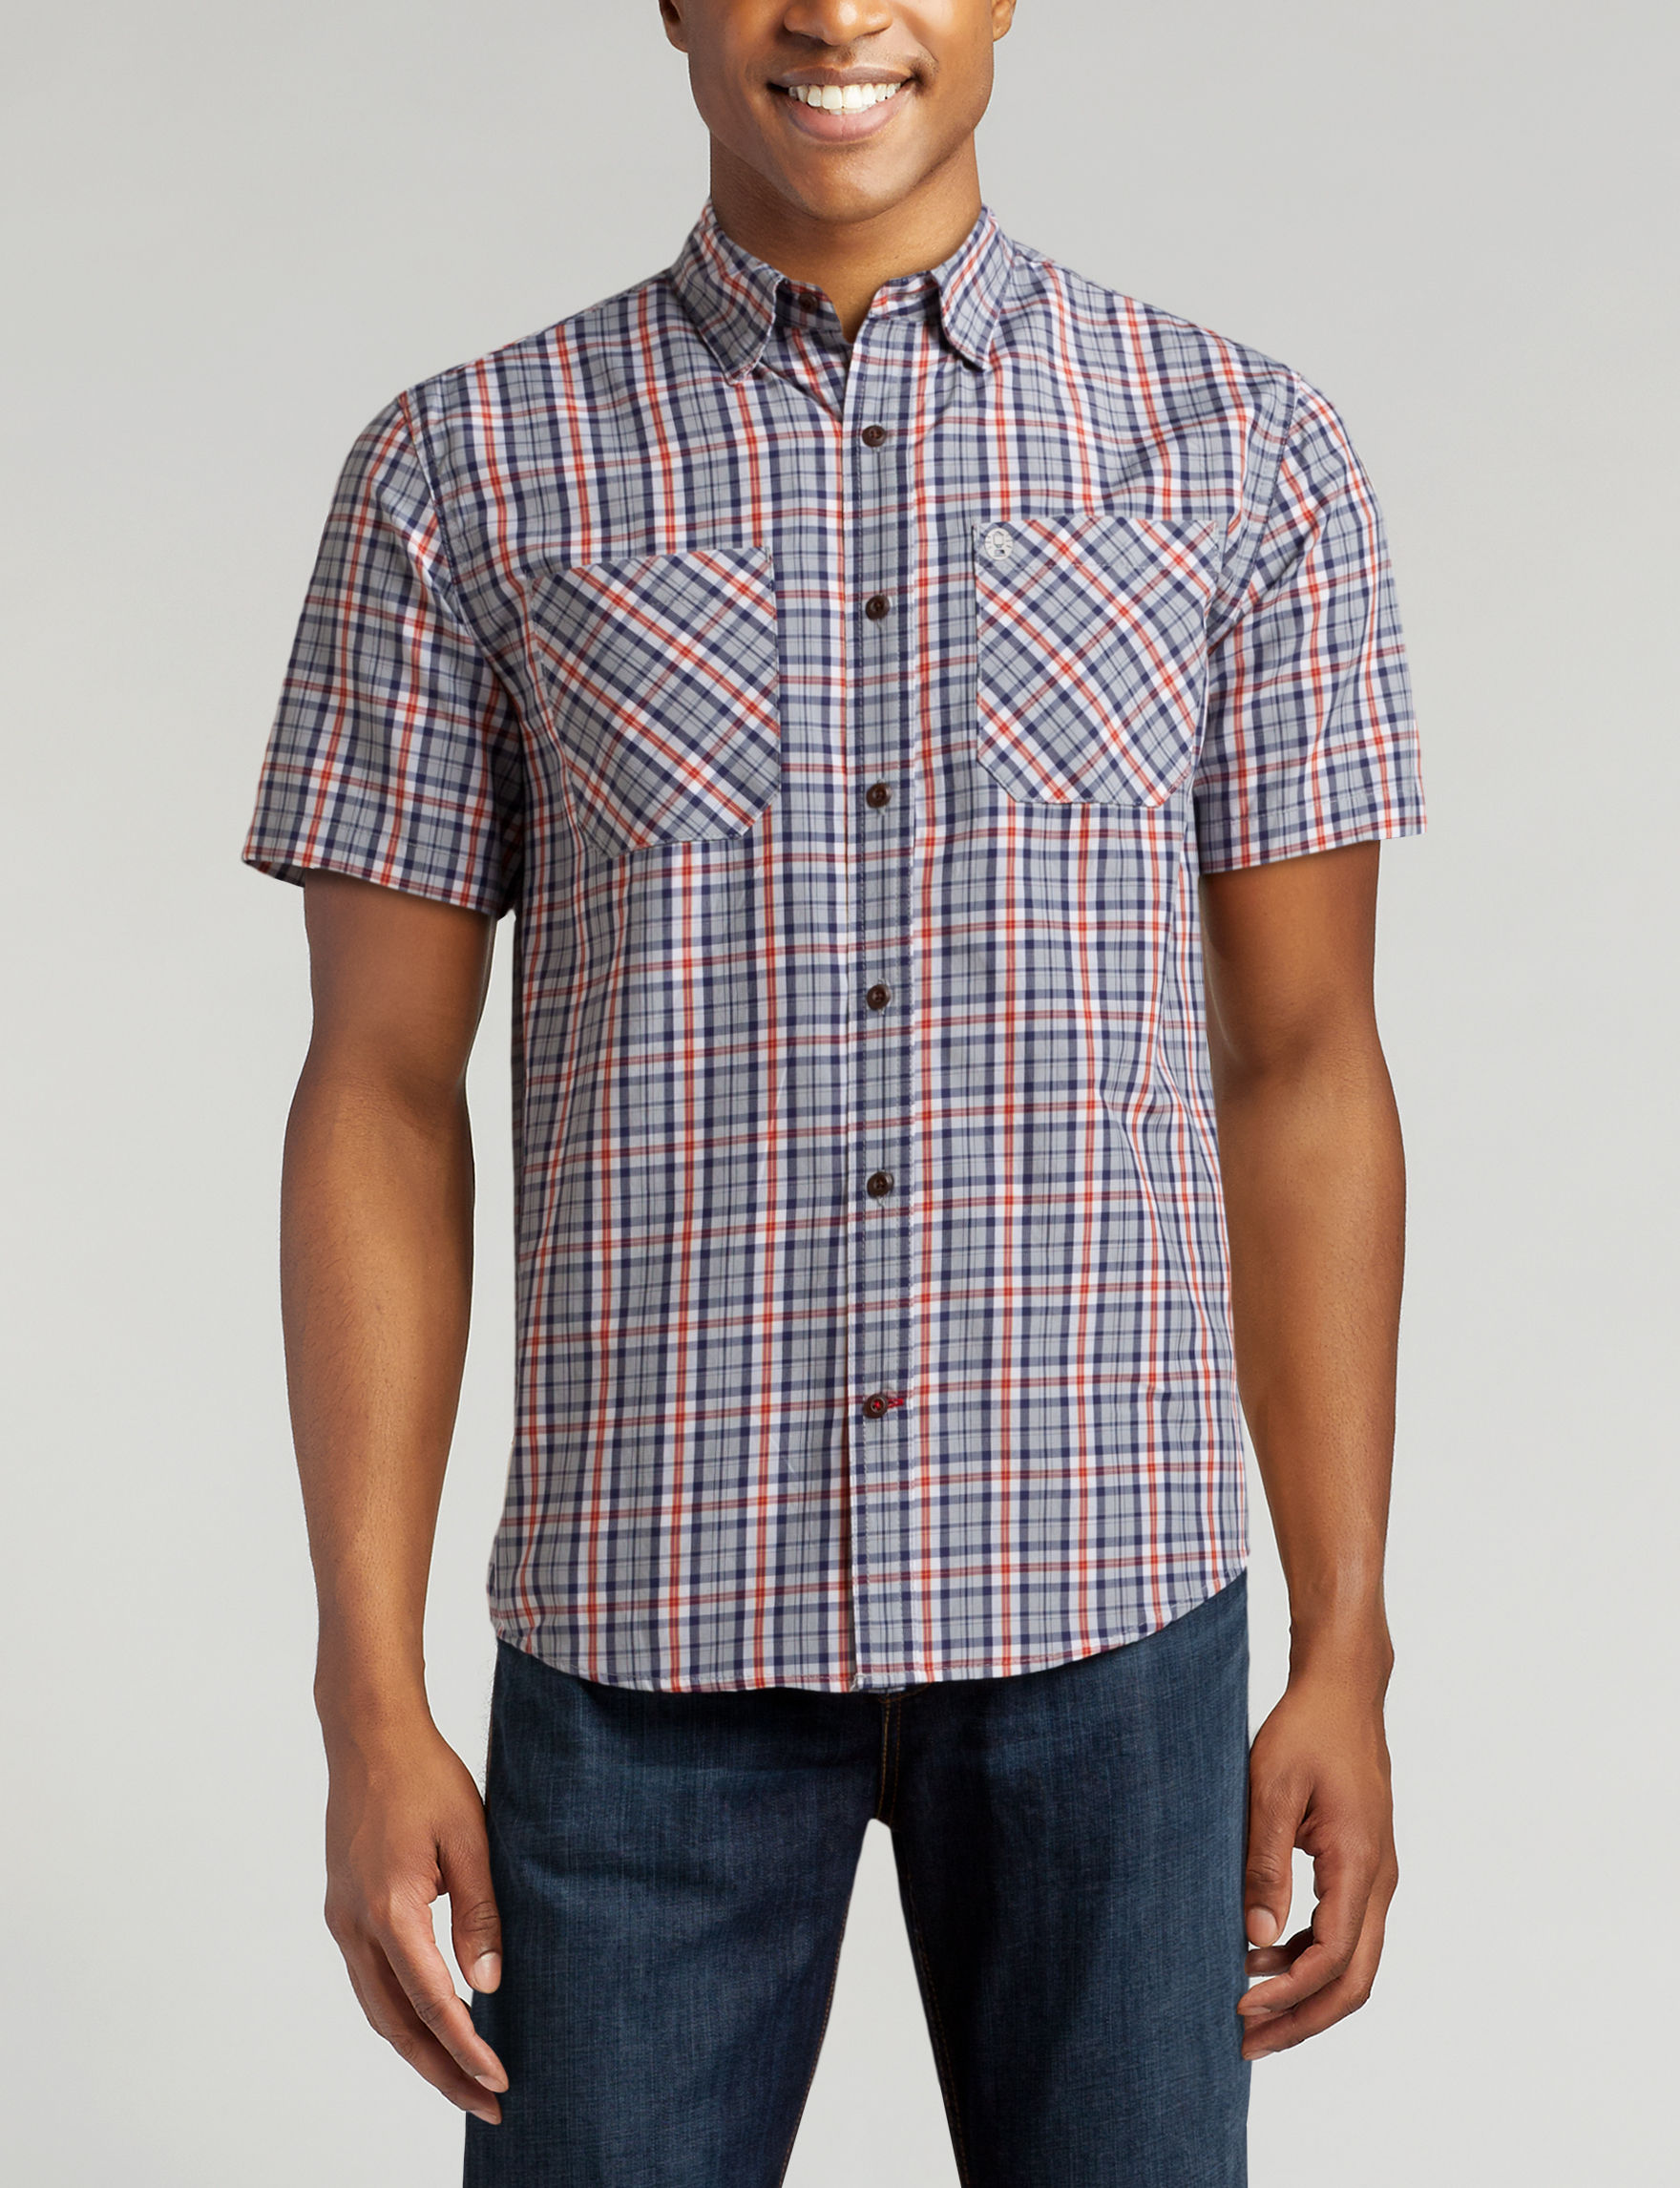 Coleman Grey / Multi Casual Button Down Shirts